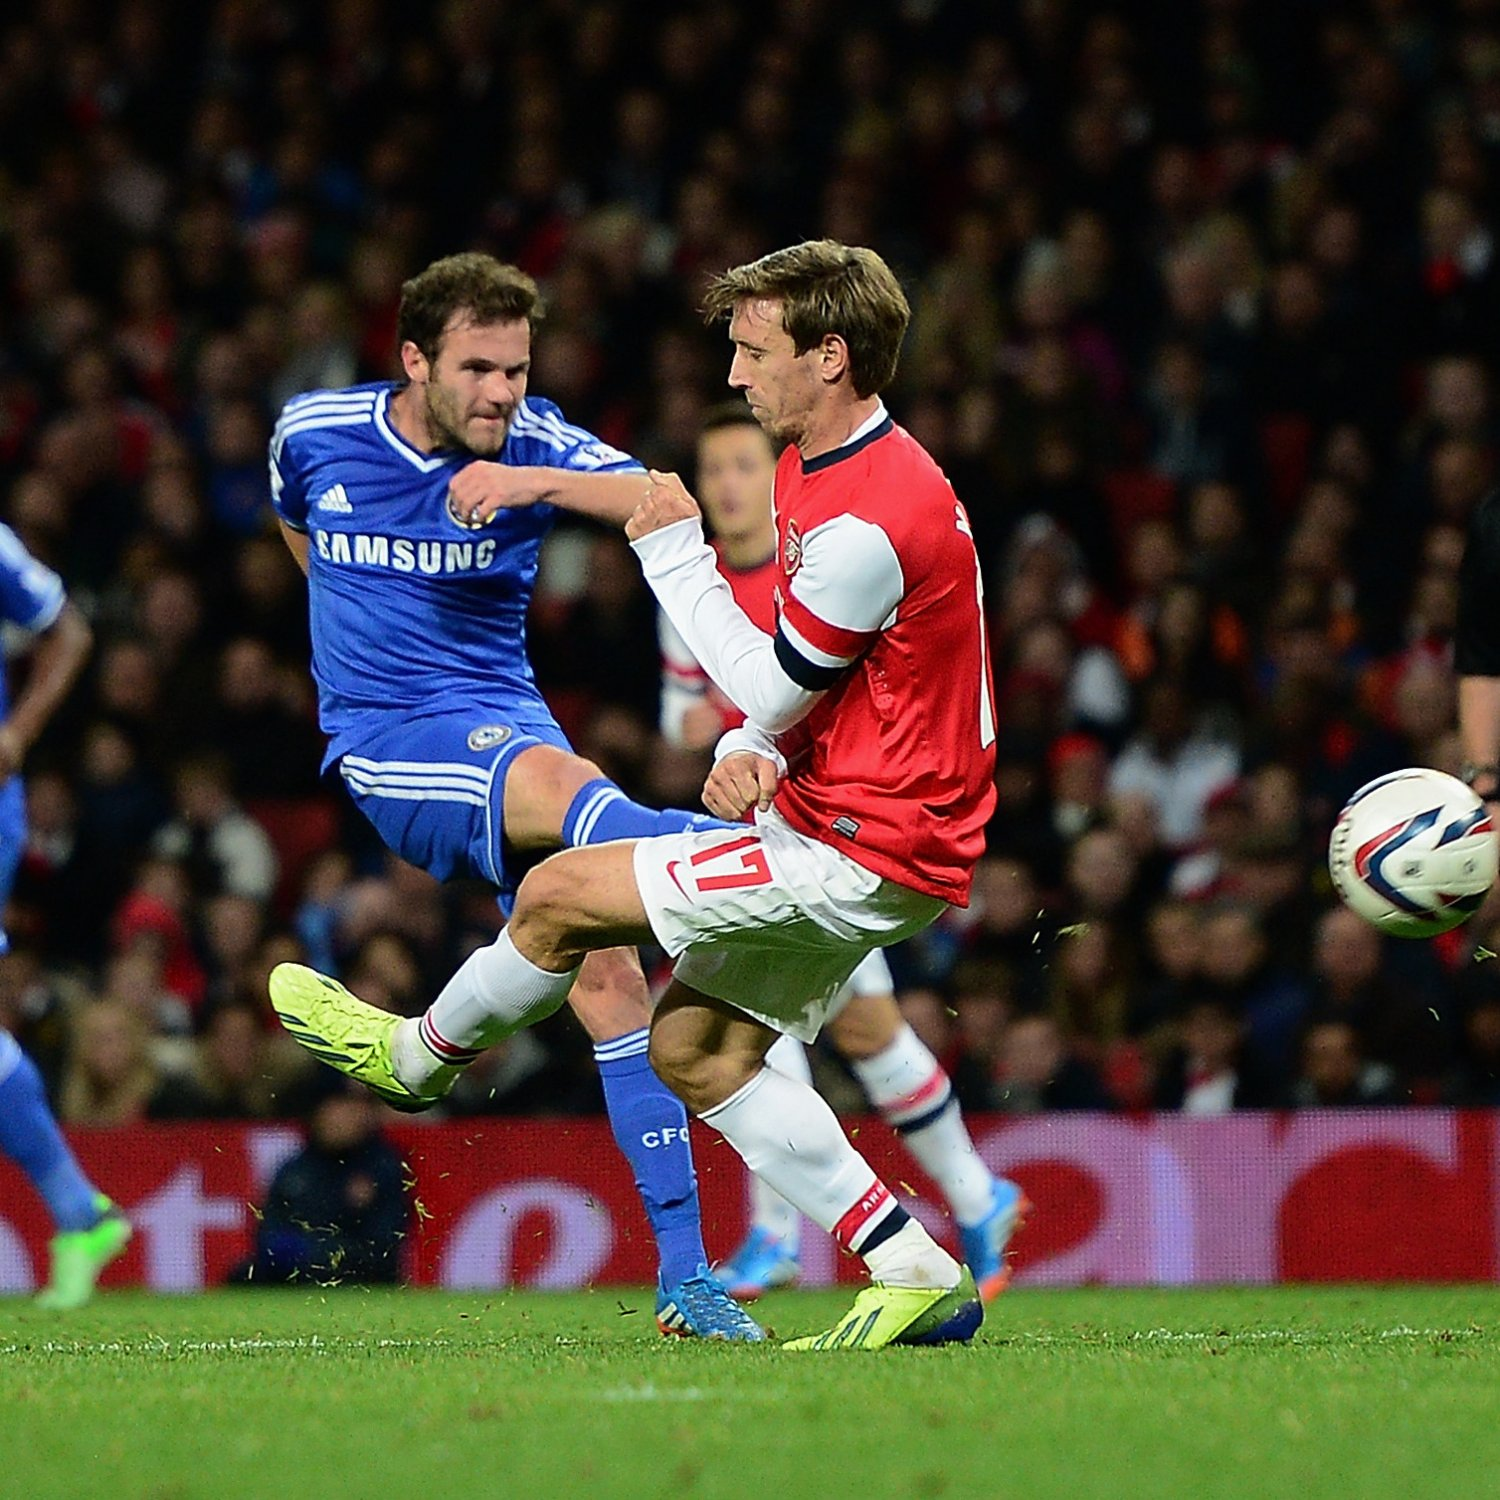 Arsenal Vs Barcelona Live Score Highlights From: Arsenal Vs. Chelsea: Capital One Cup Live Score